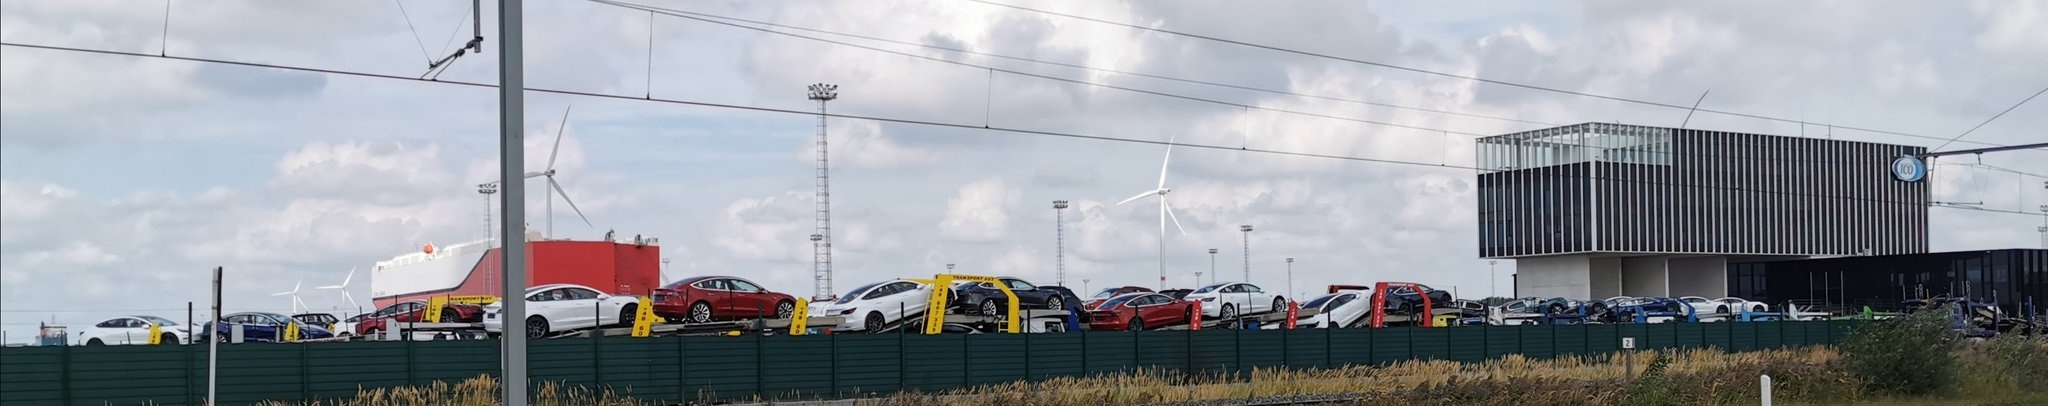 Tesla Model 3 electric cars being loaded into car carrier trucks at the Port of Zeebrugge, Belgium.